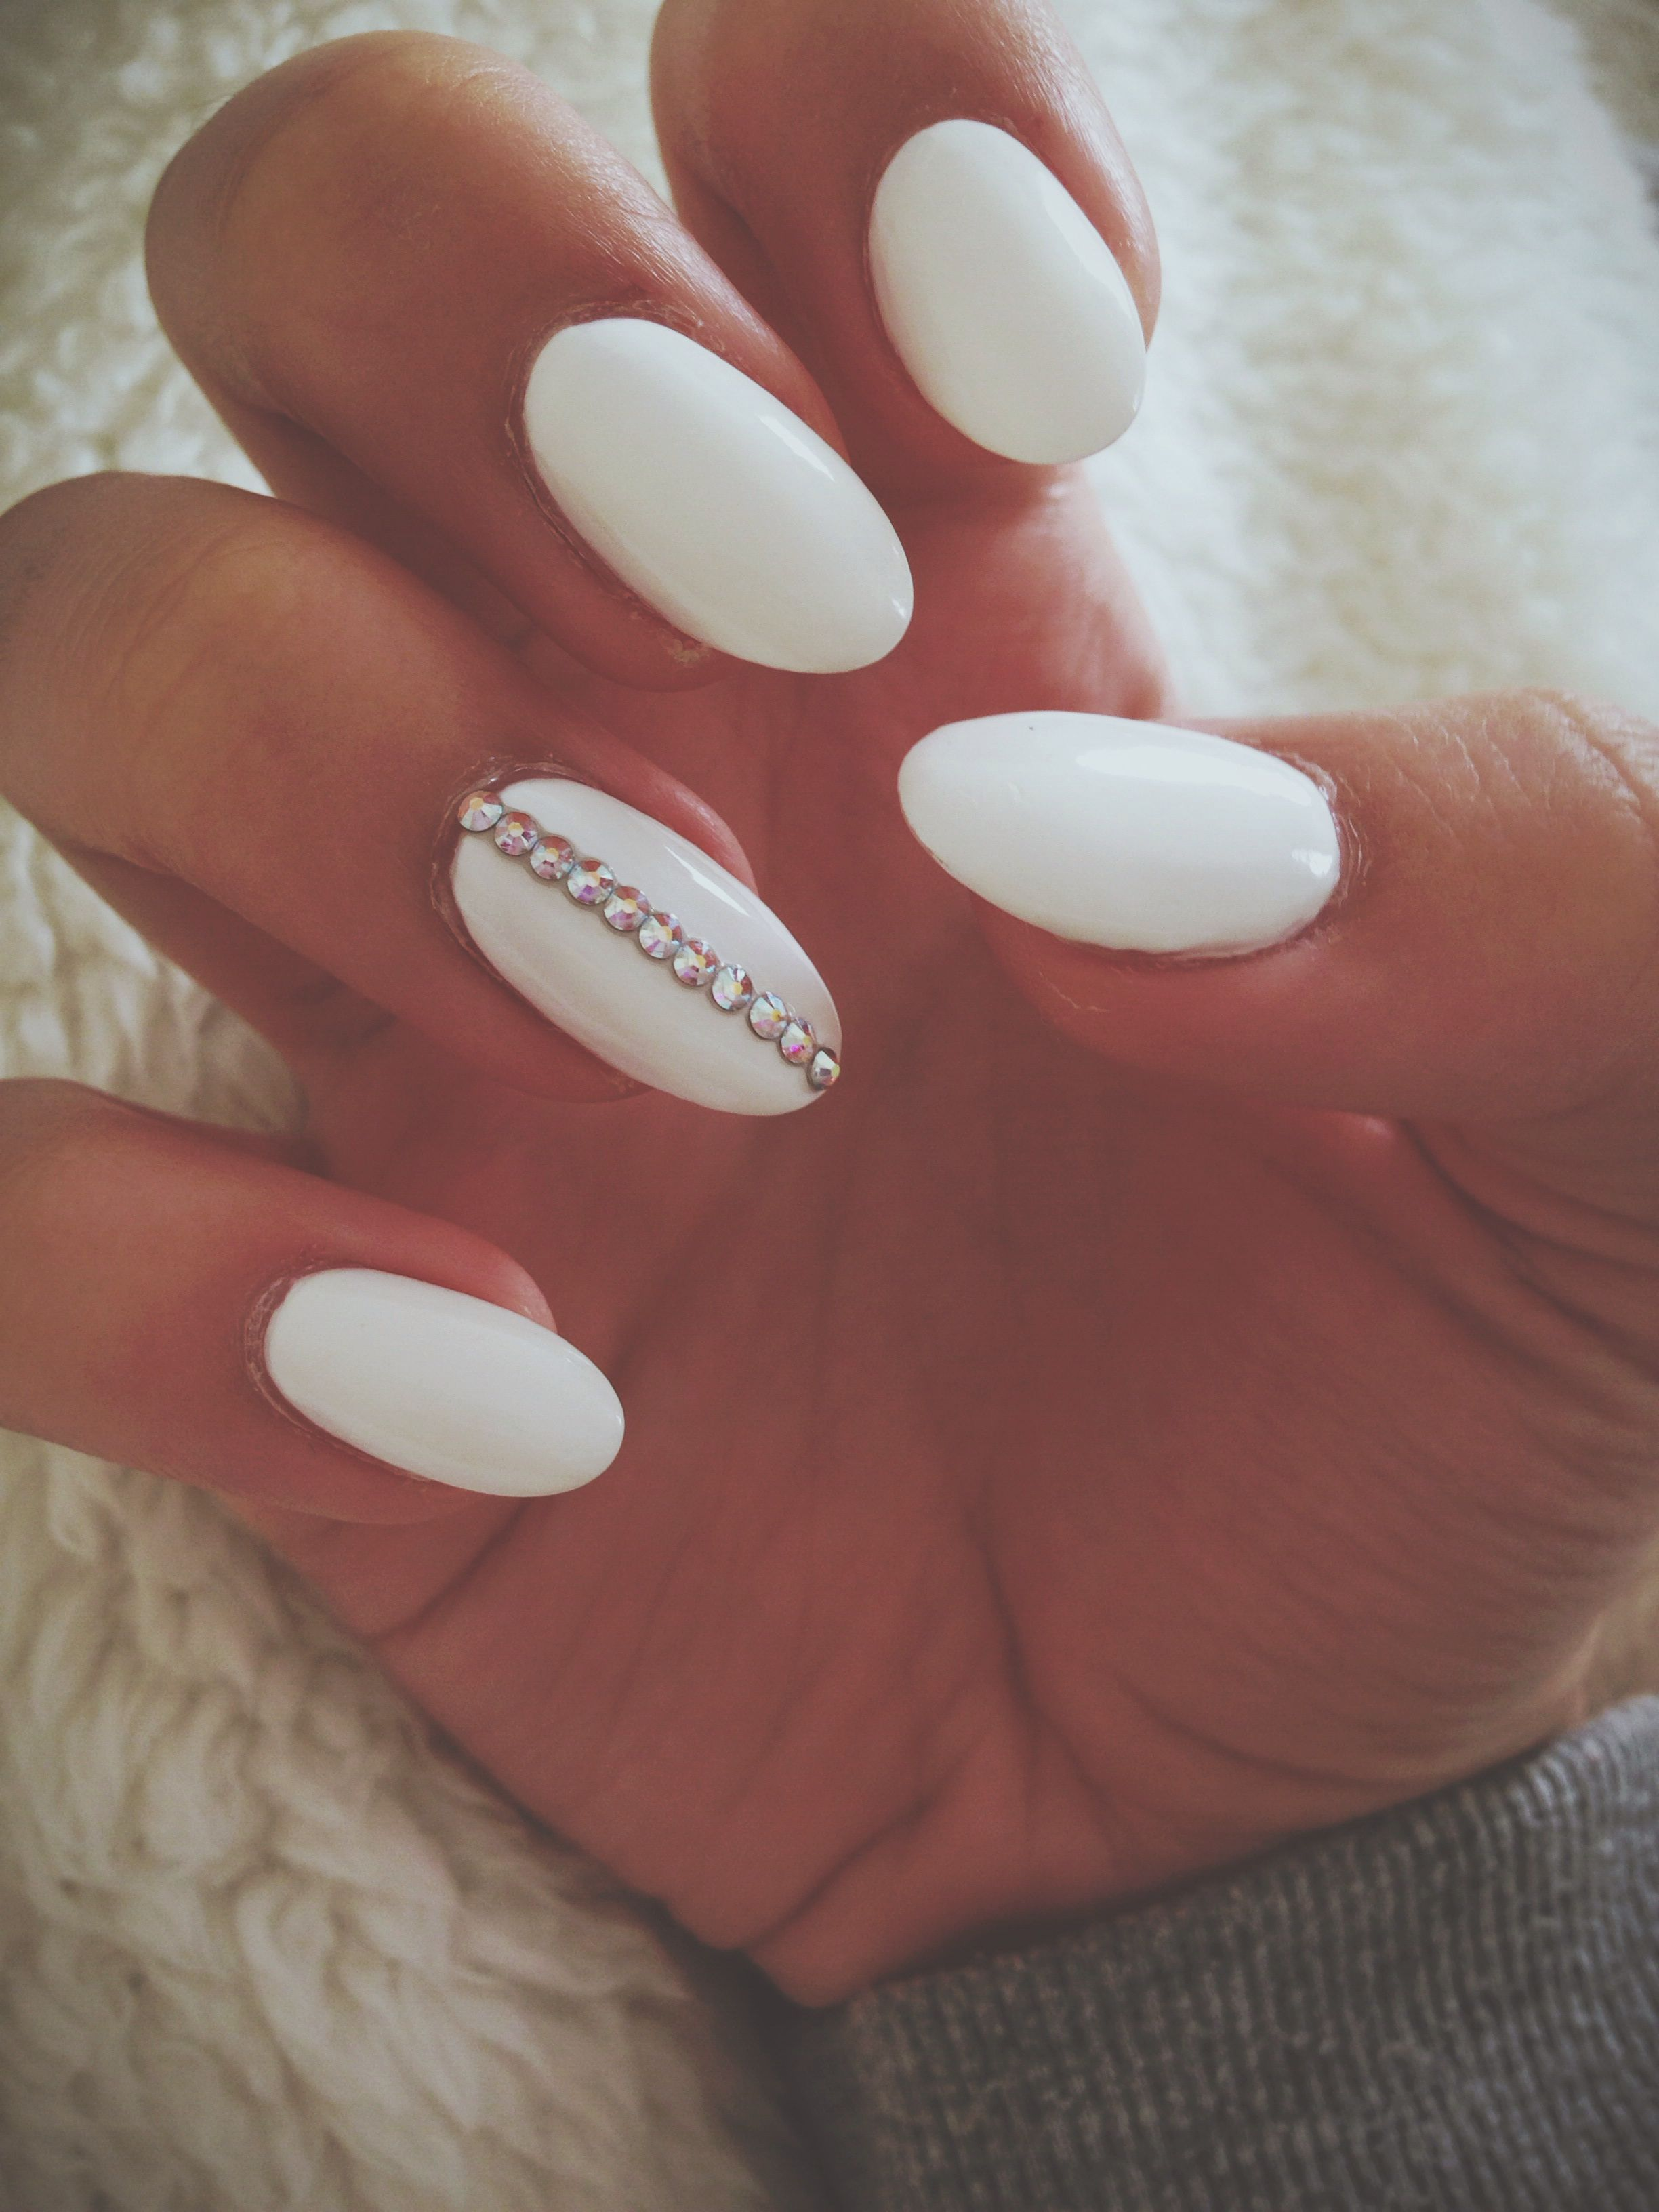 Simple White Rounded Gel Nails With An Edge Rhinestone Nails Nails Design With Rhinestones Gel Nails French